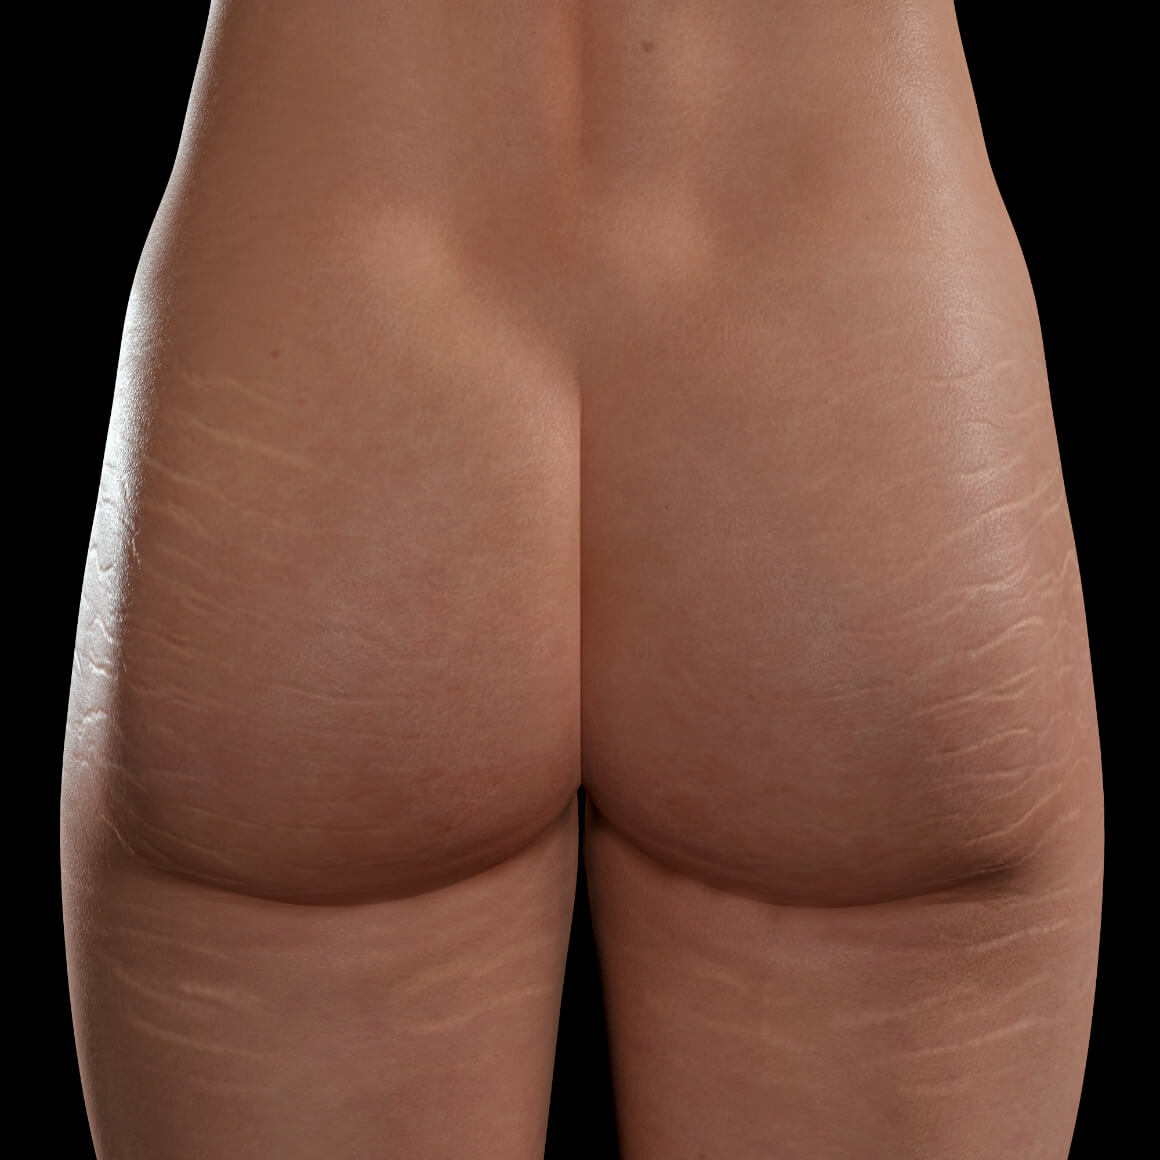 Buttocks and thighs of a Clinique Chloé female patient showing stretch marks